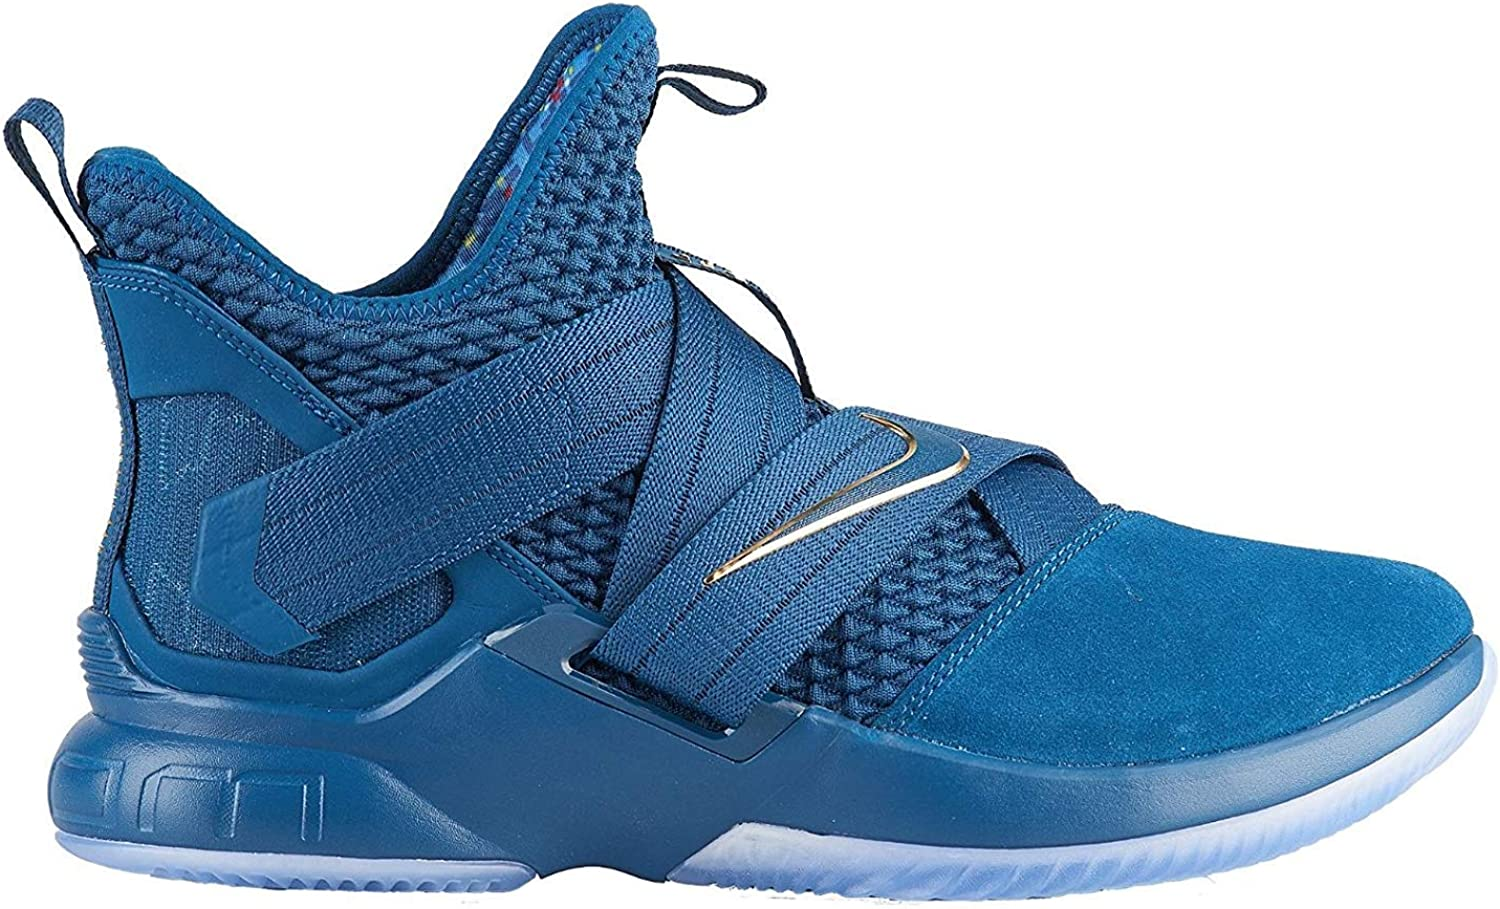 NIKE Lebron Soldier XII SFG Mens Ao4054